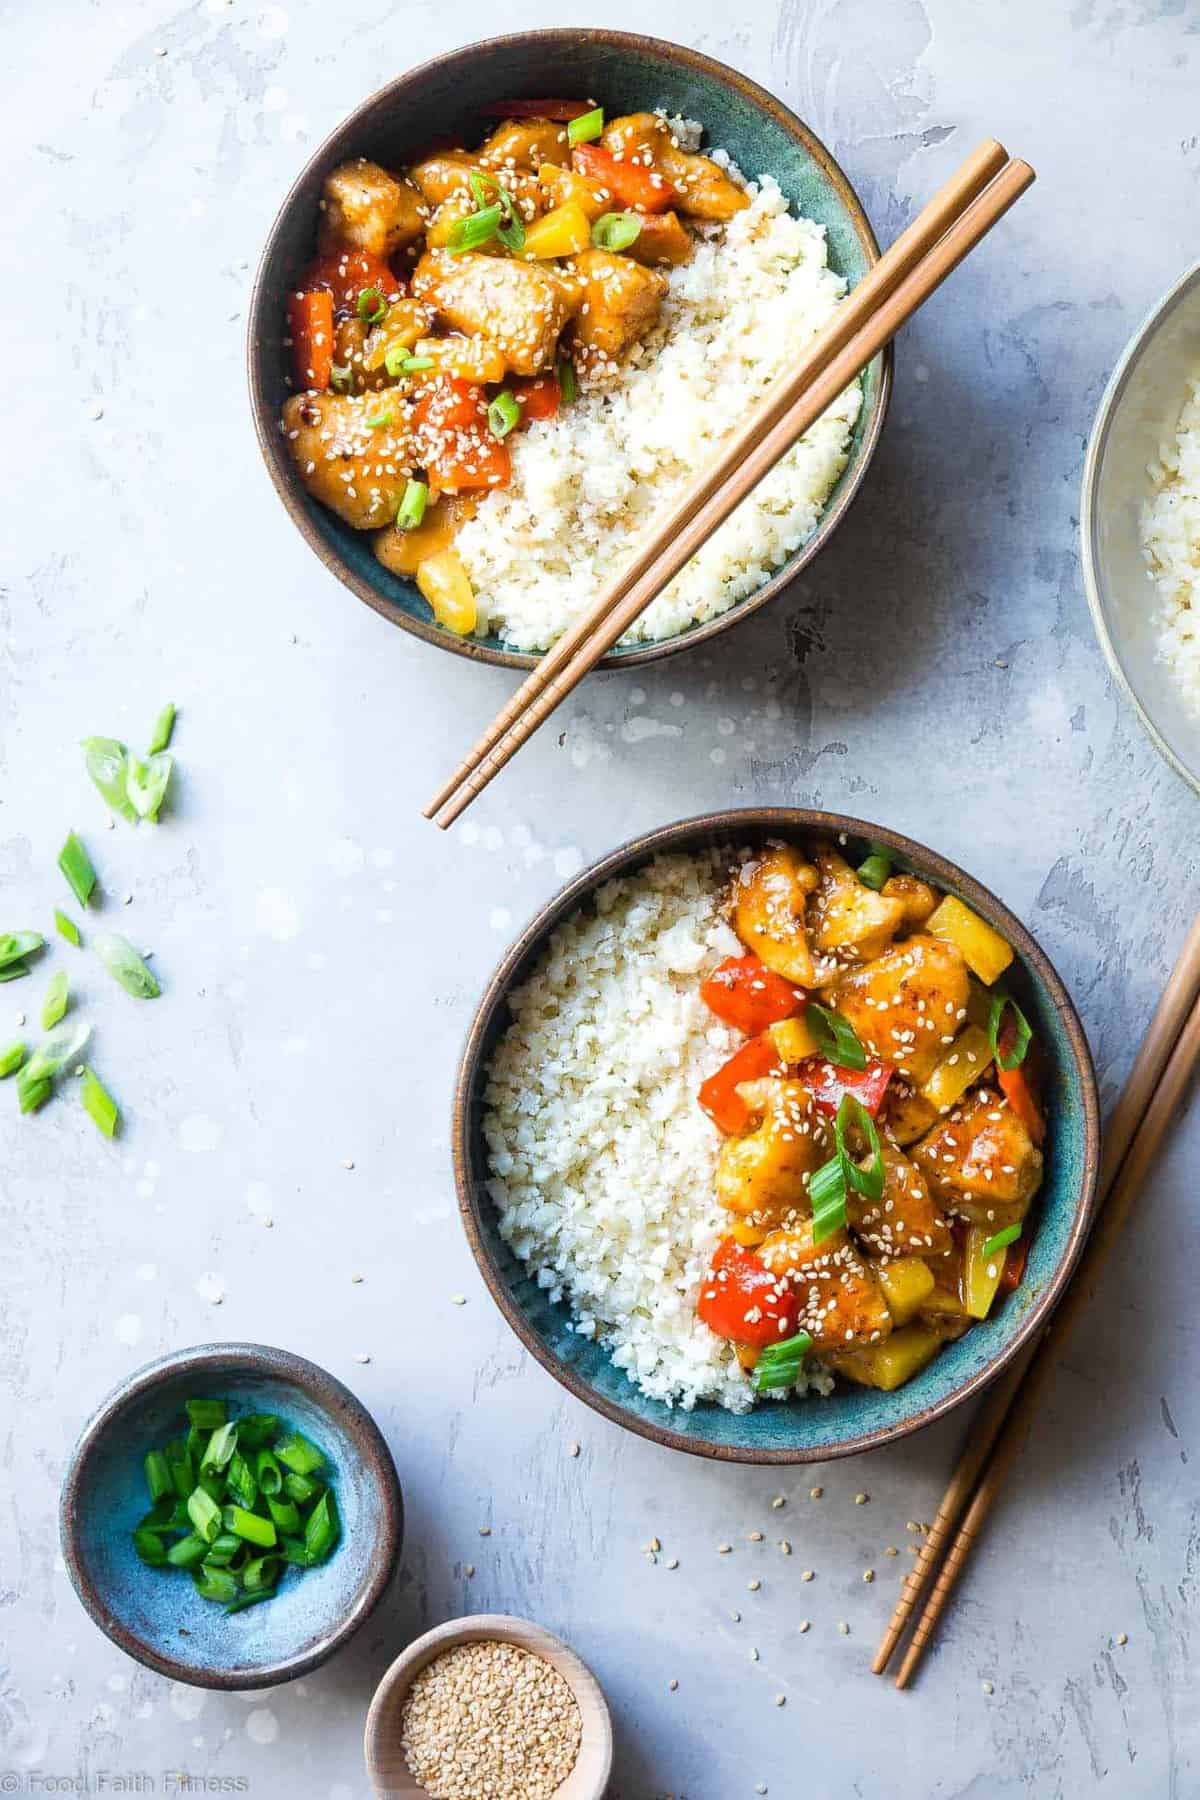 Gluten Free Whole30 Sweet and Sour Chicken - This paleo friendly, healthy sweet and sour chicken is so easy to make and tastes better than takeout and is WAY better for you! It's sugar/grain/gluten/dairy/egg free too! | #Foodfaithfitness |